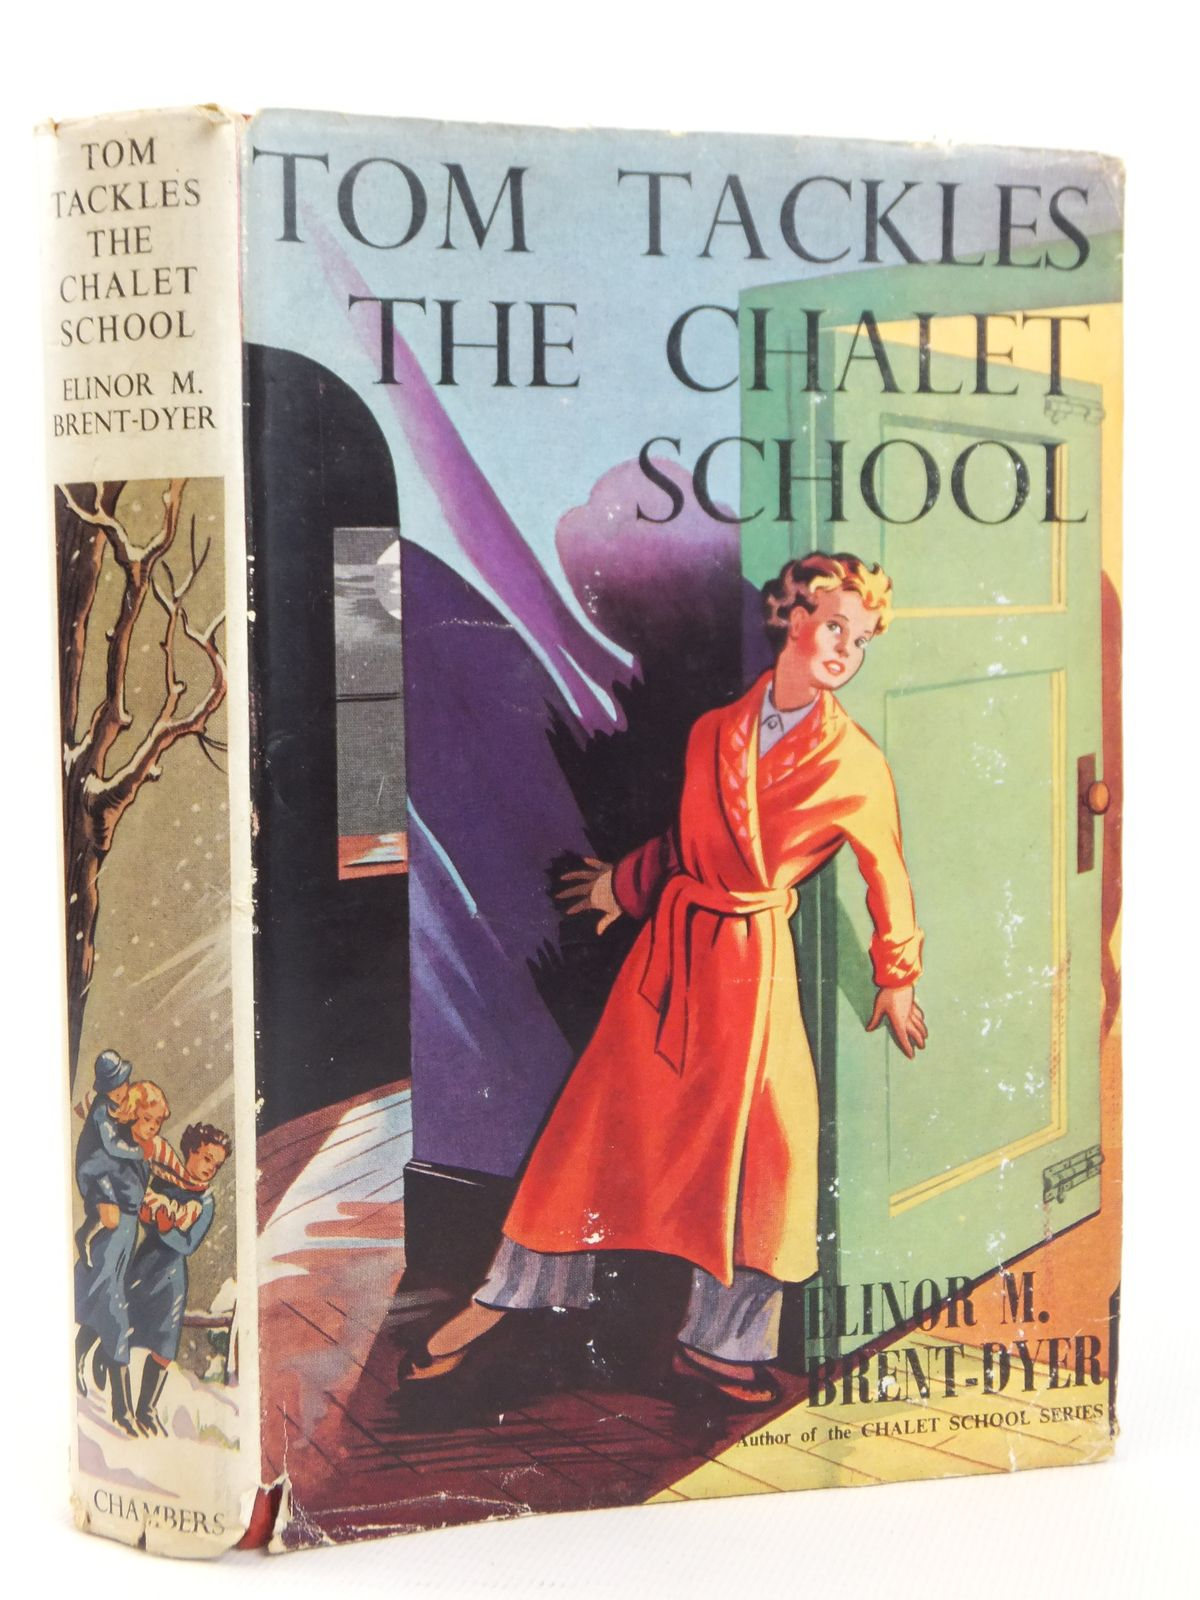 Photo of TOM TACKLES THE CHALET SCHOOL written by Brent-Dyer, Elinor M. published by W. & R. Chambers Limited (STOCK CODE: 2122167)  for sale by Stella & Rose's Books